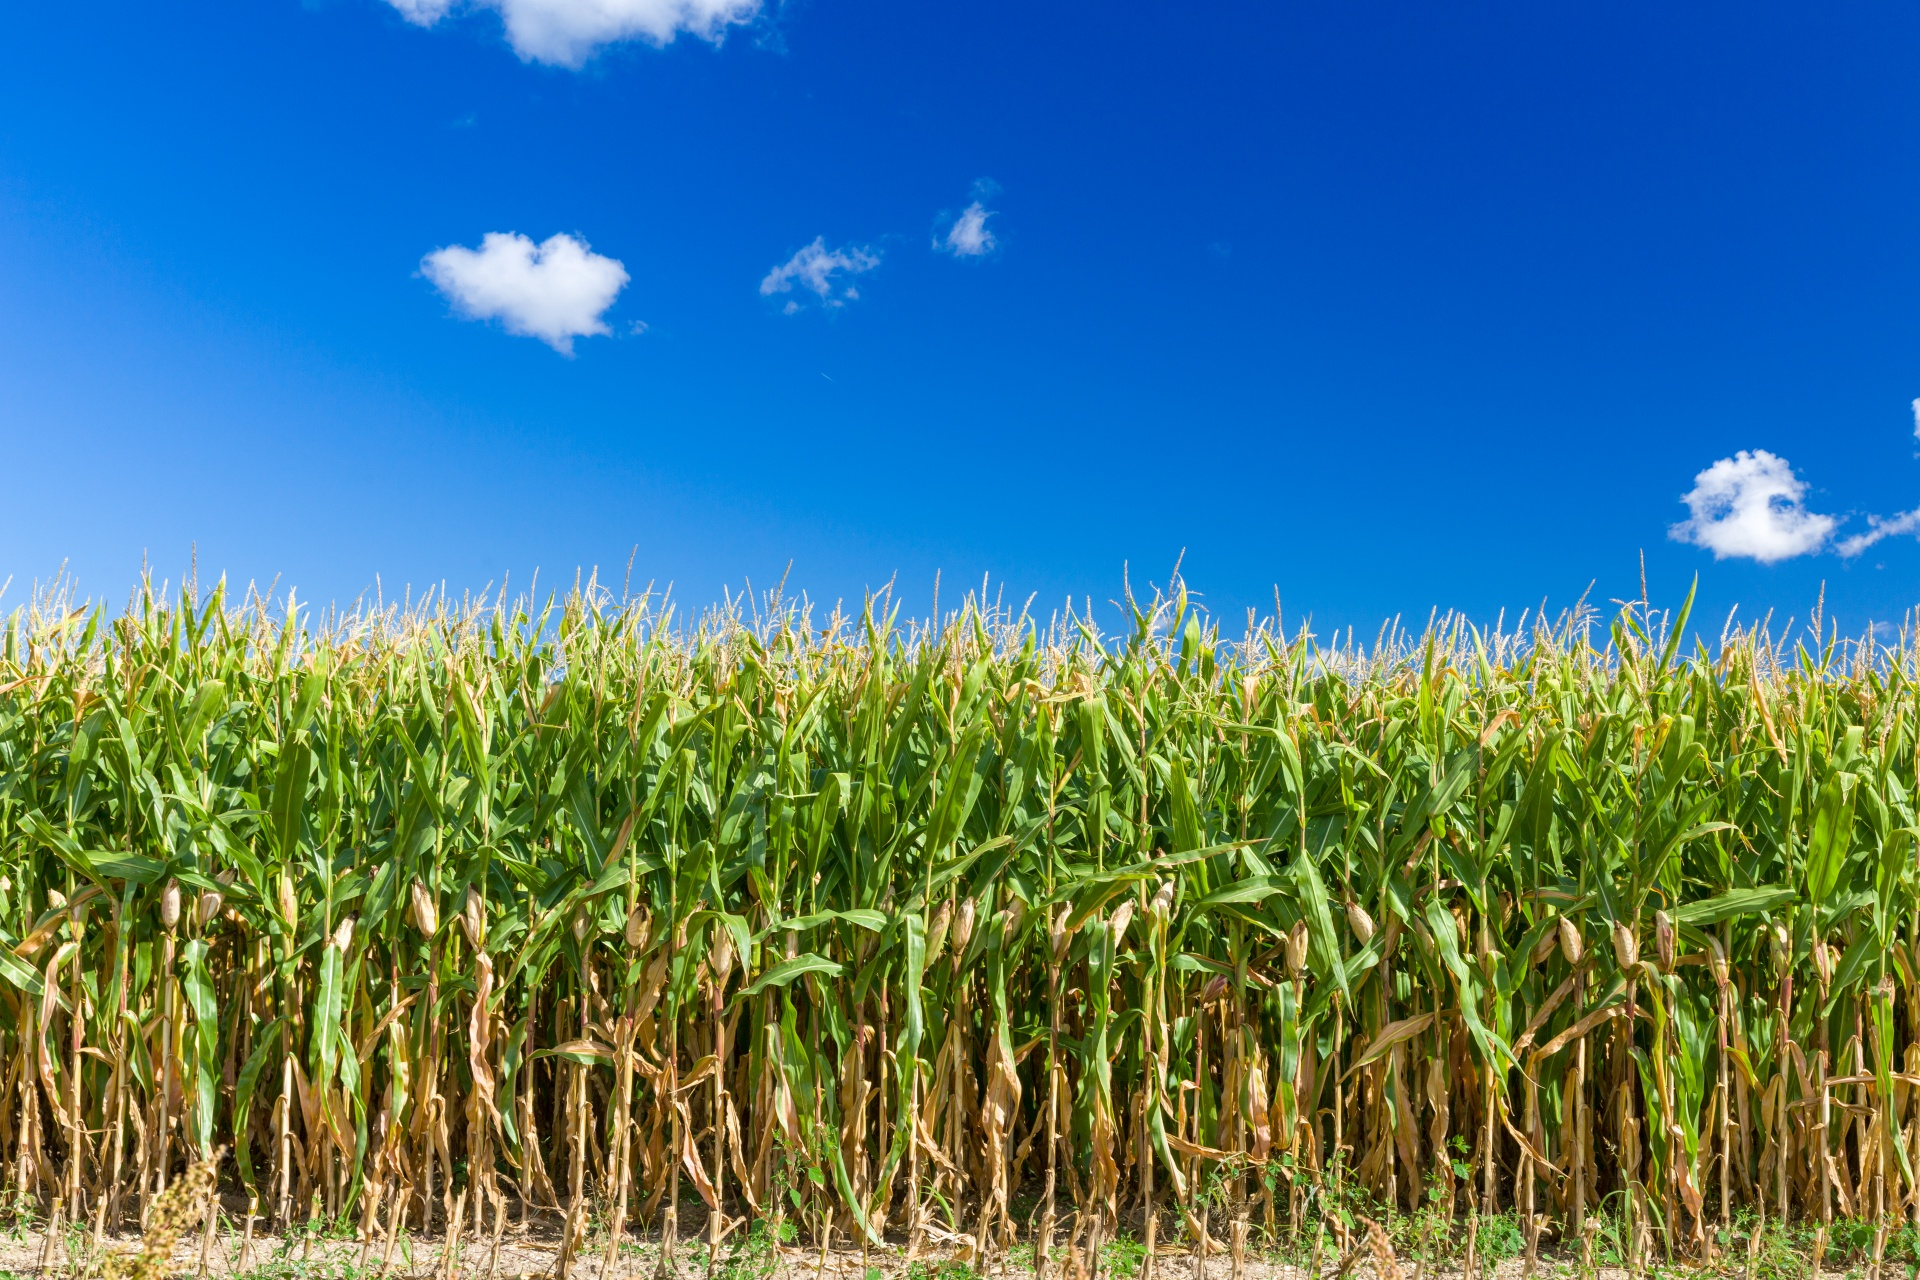 Plant Corn, Reap Milo: The Principles of Sowing and Reaping in Chiropractic